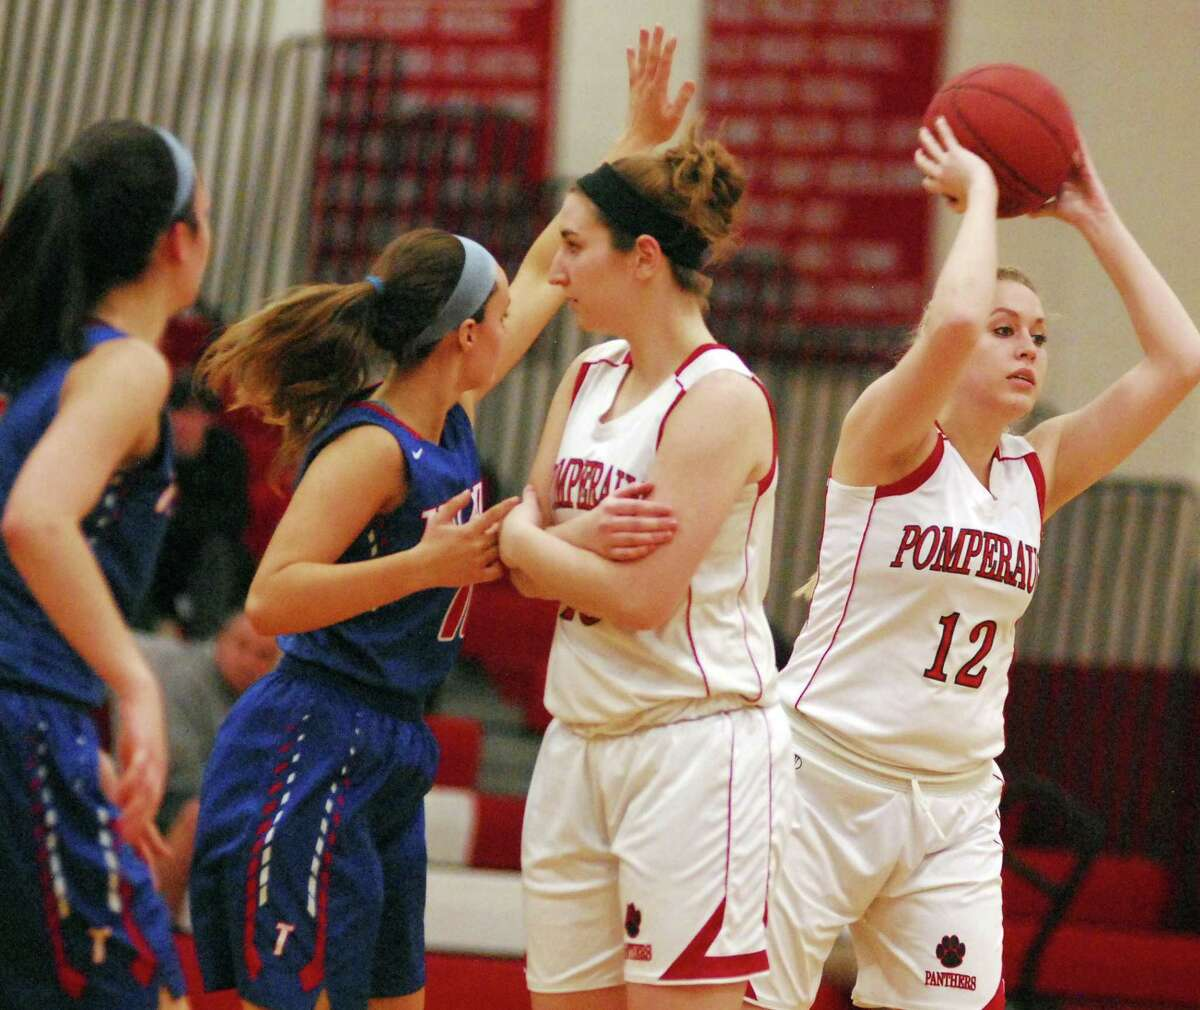 Pomperaug's Megan Todhunter looks to pass during a Class L girls basketball game against Tolland on Tuesday.